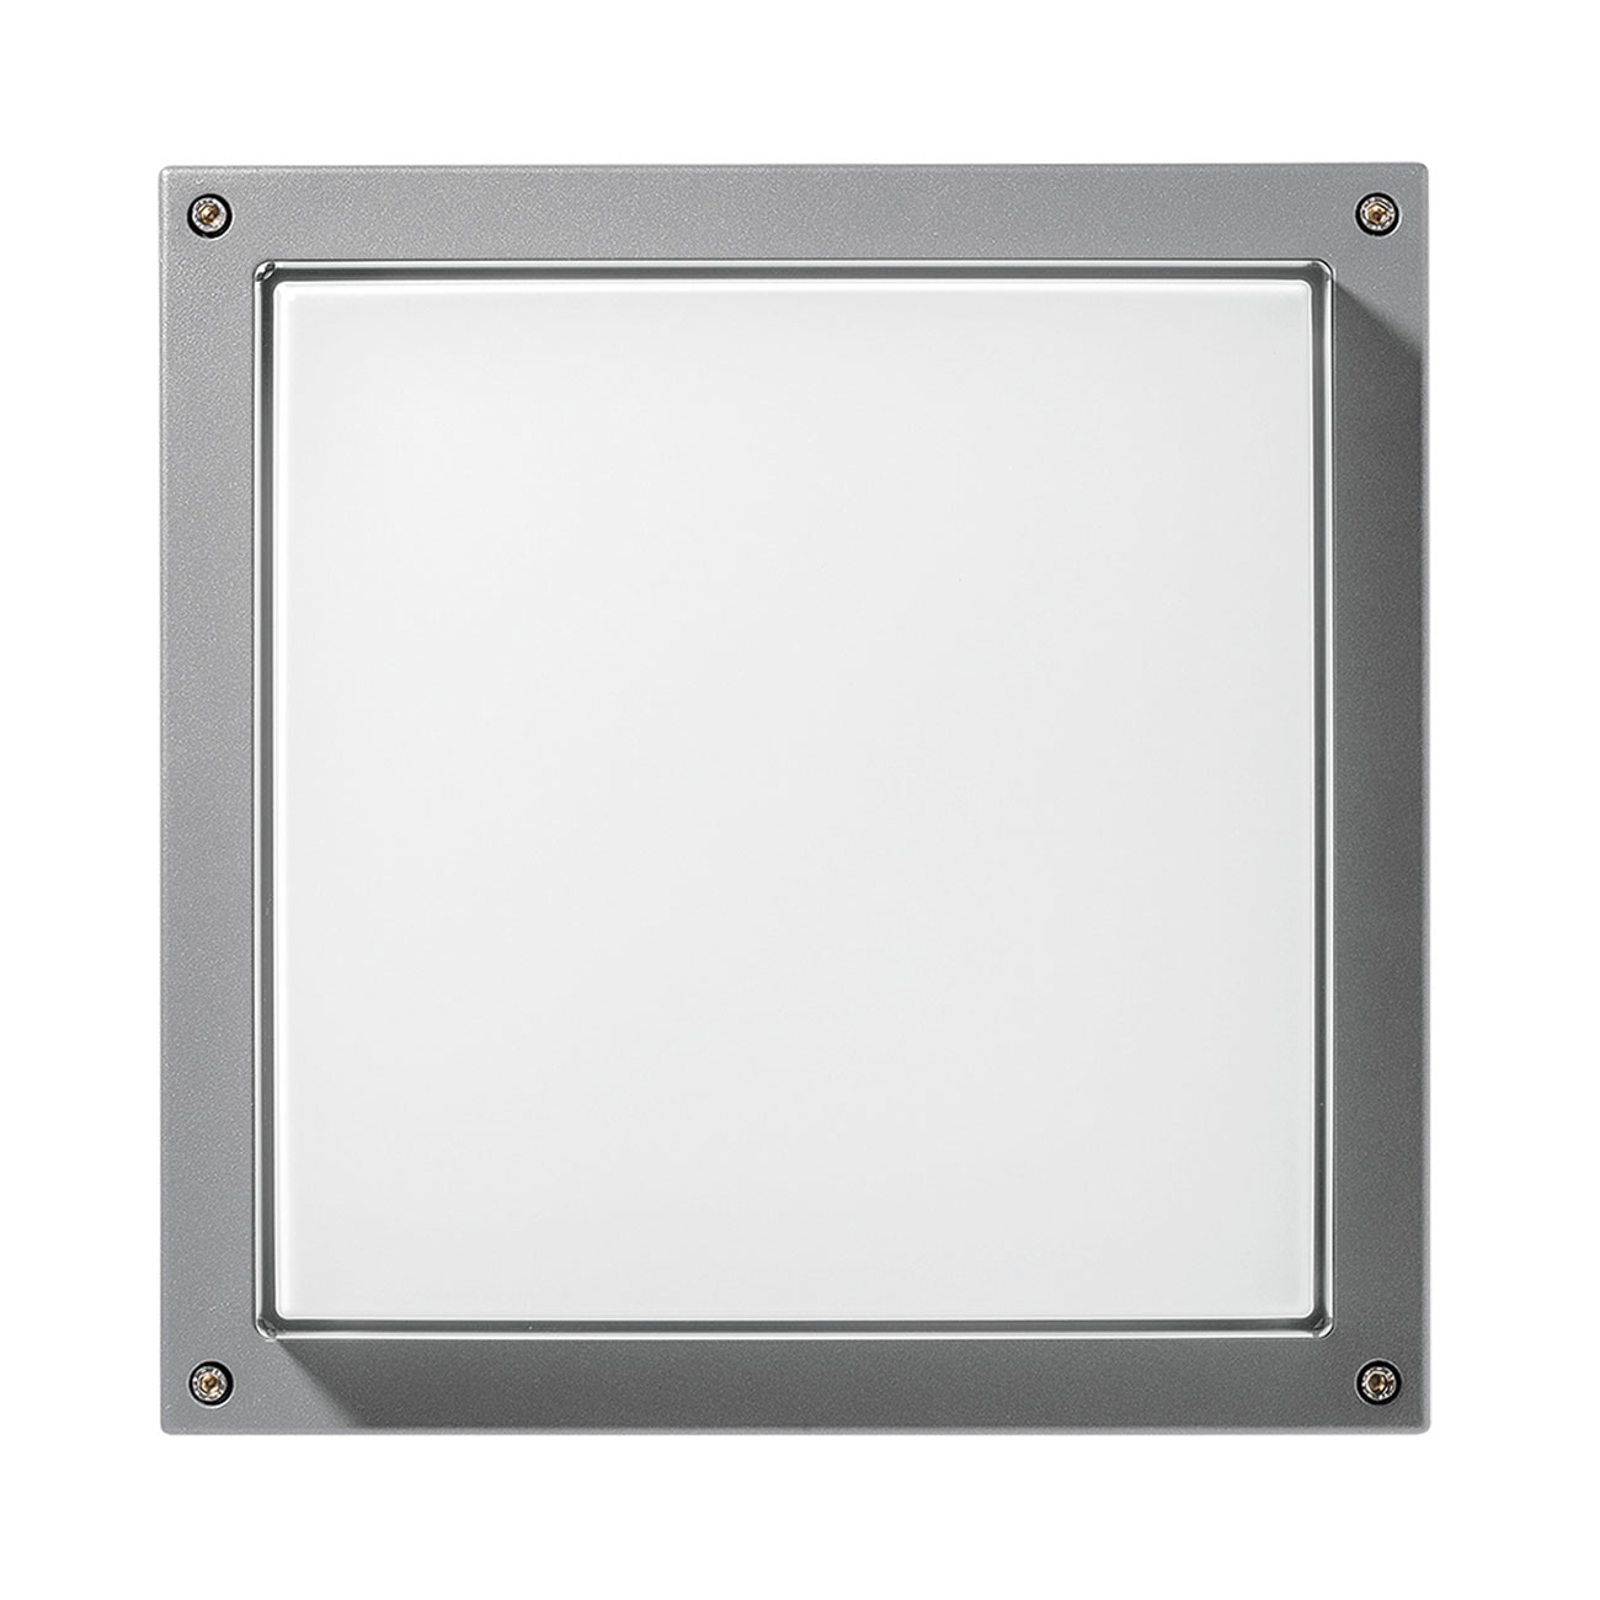 Applique Bliz Square 40, 3 000 K grise dimmable